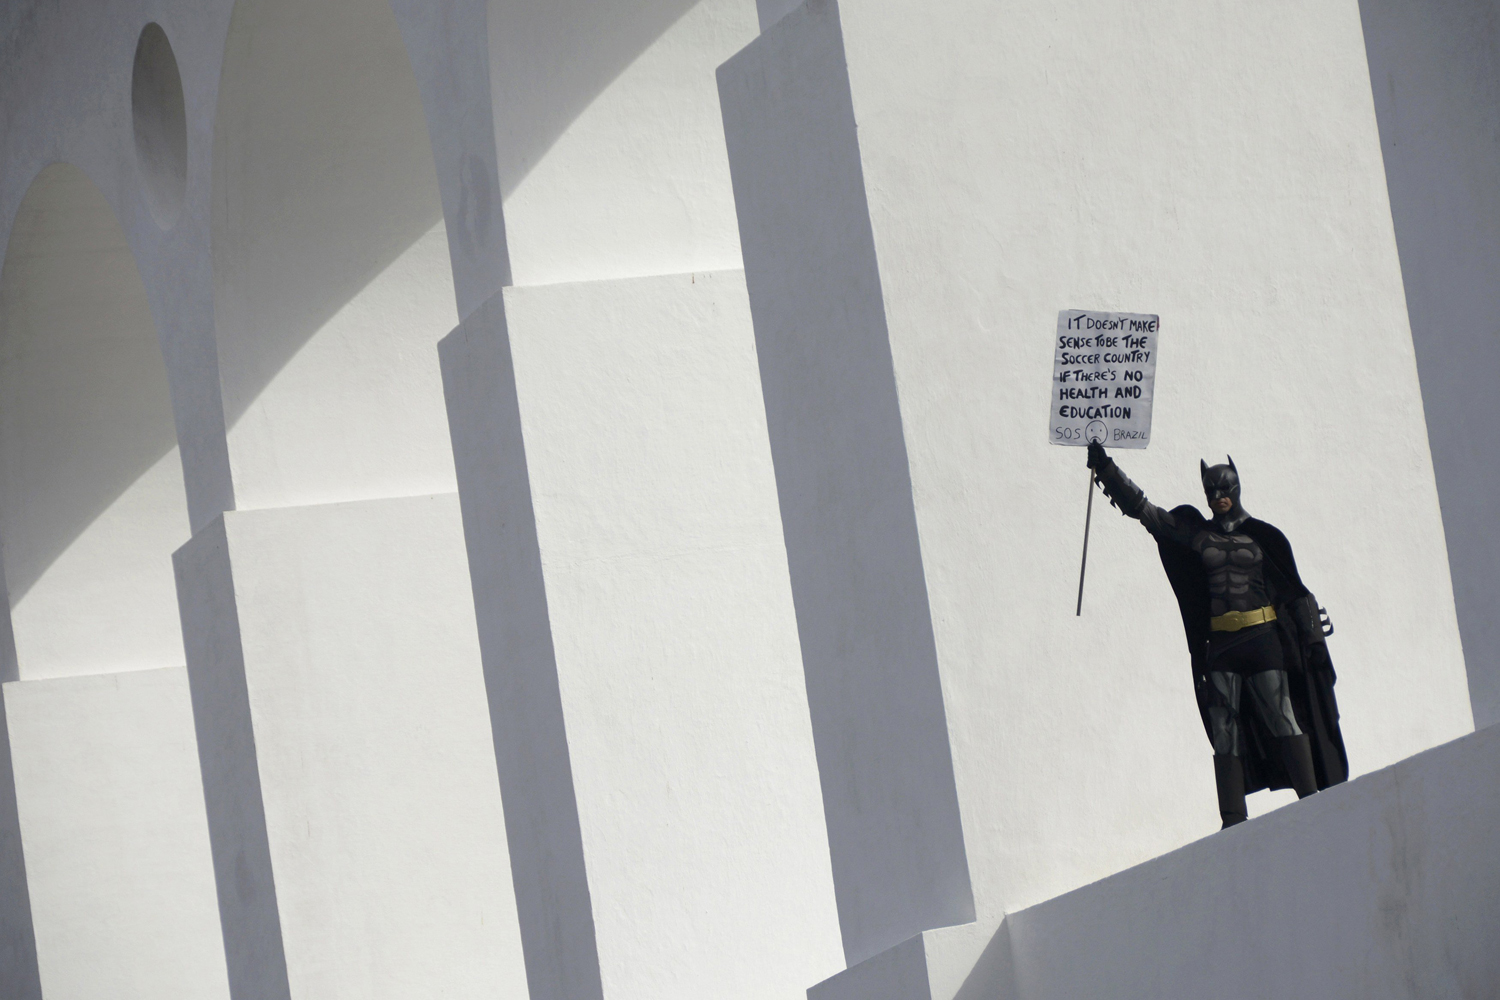 Jun. 12, 2014. An anti-government demonstrator dressed as Batman holds a sign on the Lapa Arches during a protest against the 2014 World Cup in Rio de Janeiro.